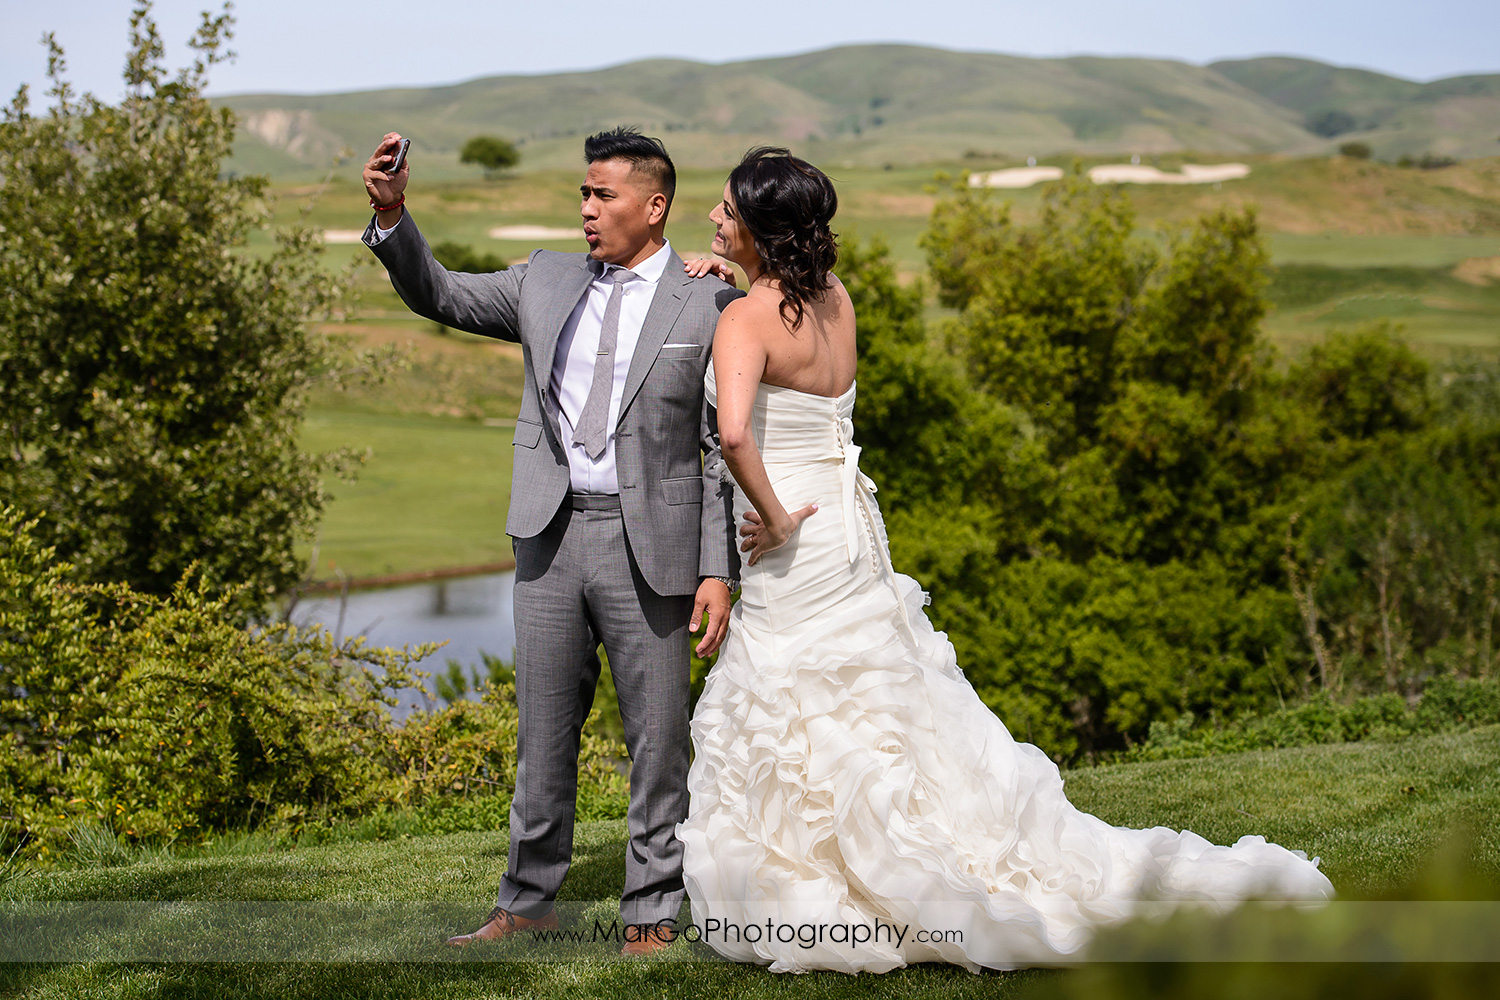 first look selfie of bride and groom at Poppy Ridge Golf Course in Livermore